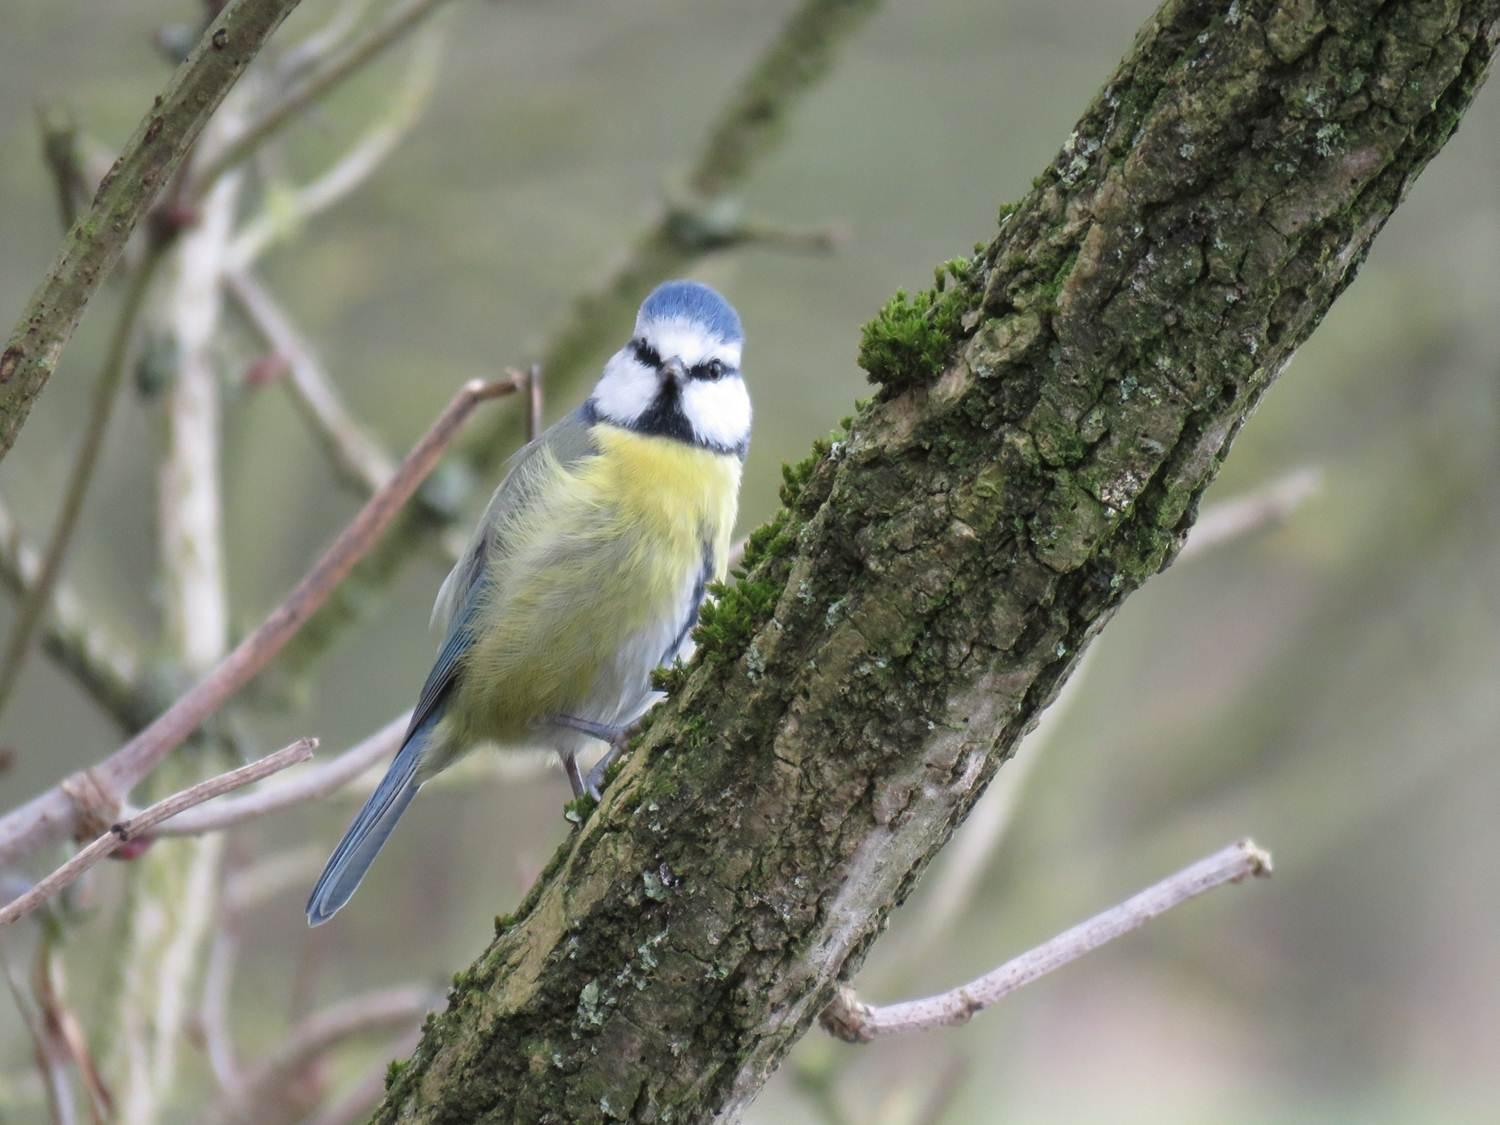 The Blue Tit - bird of the week